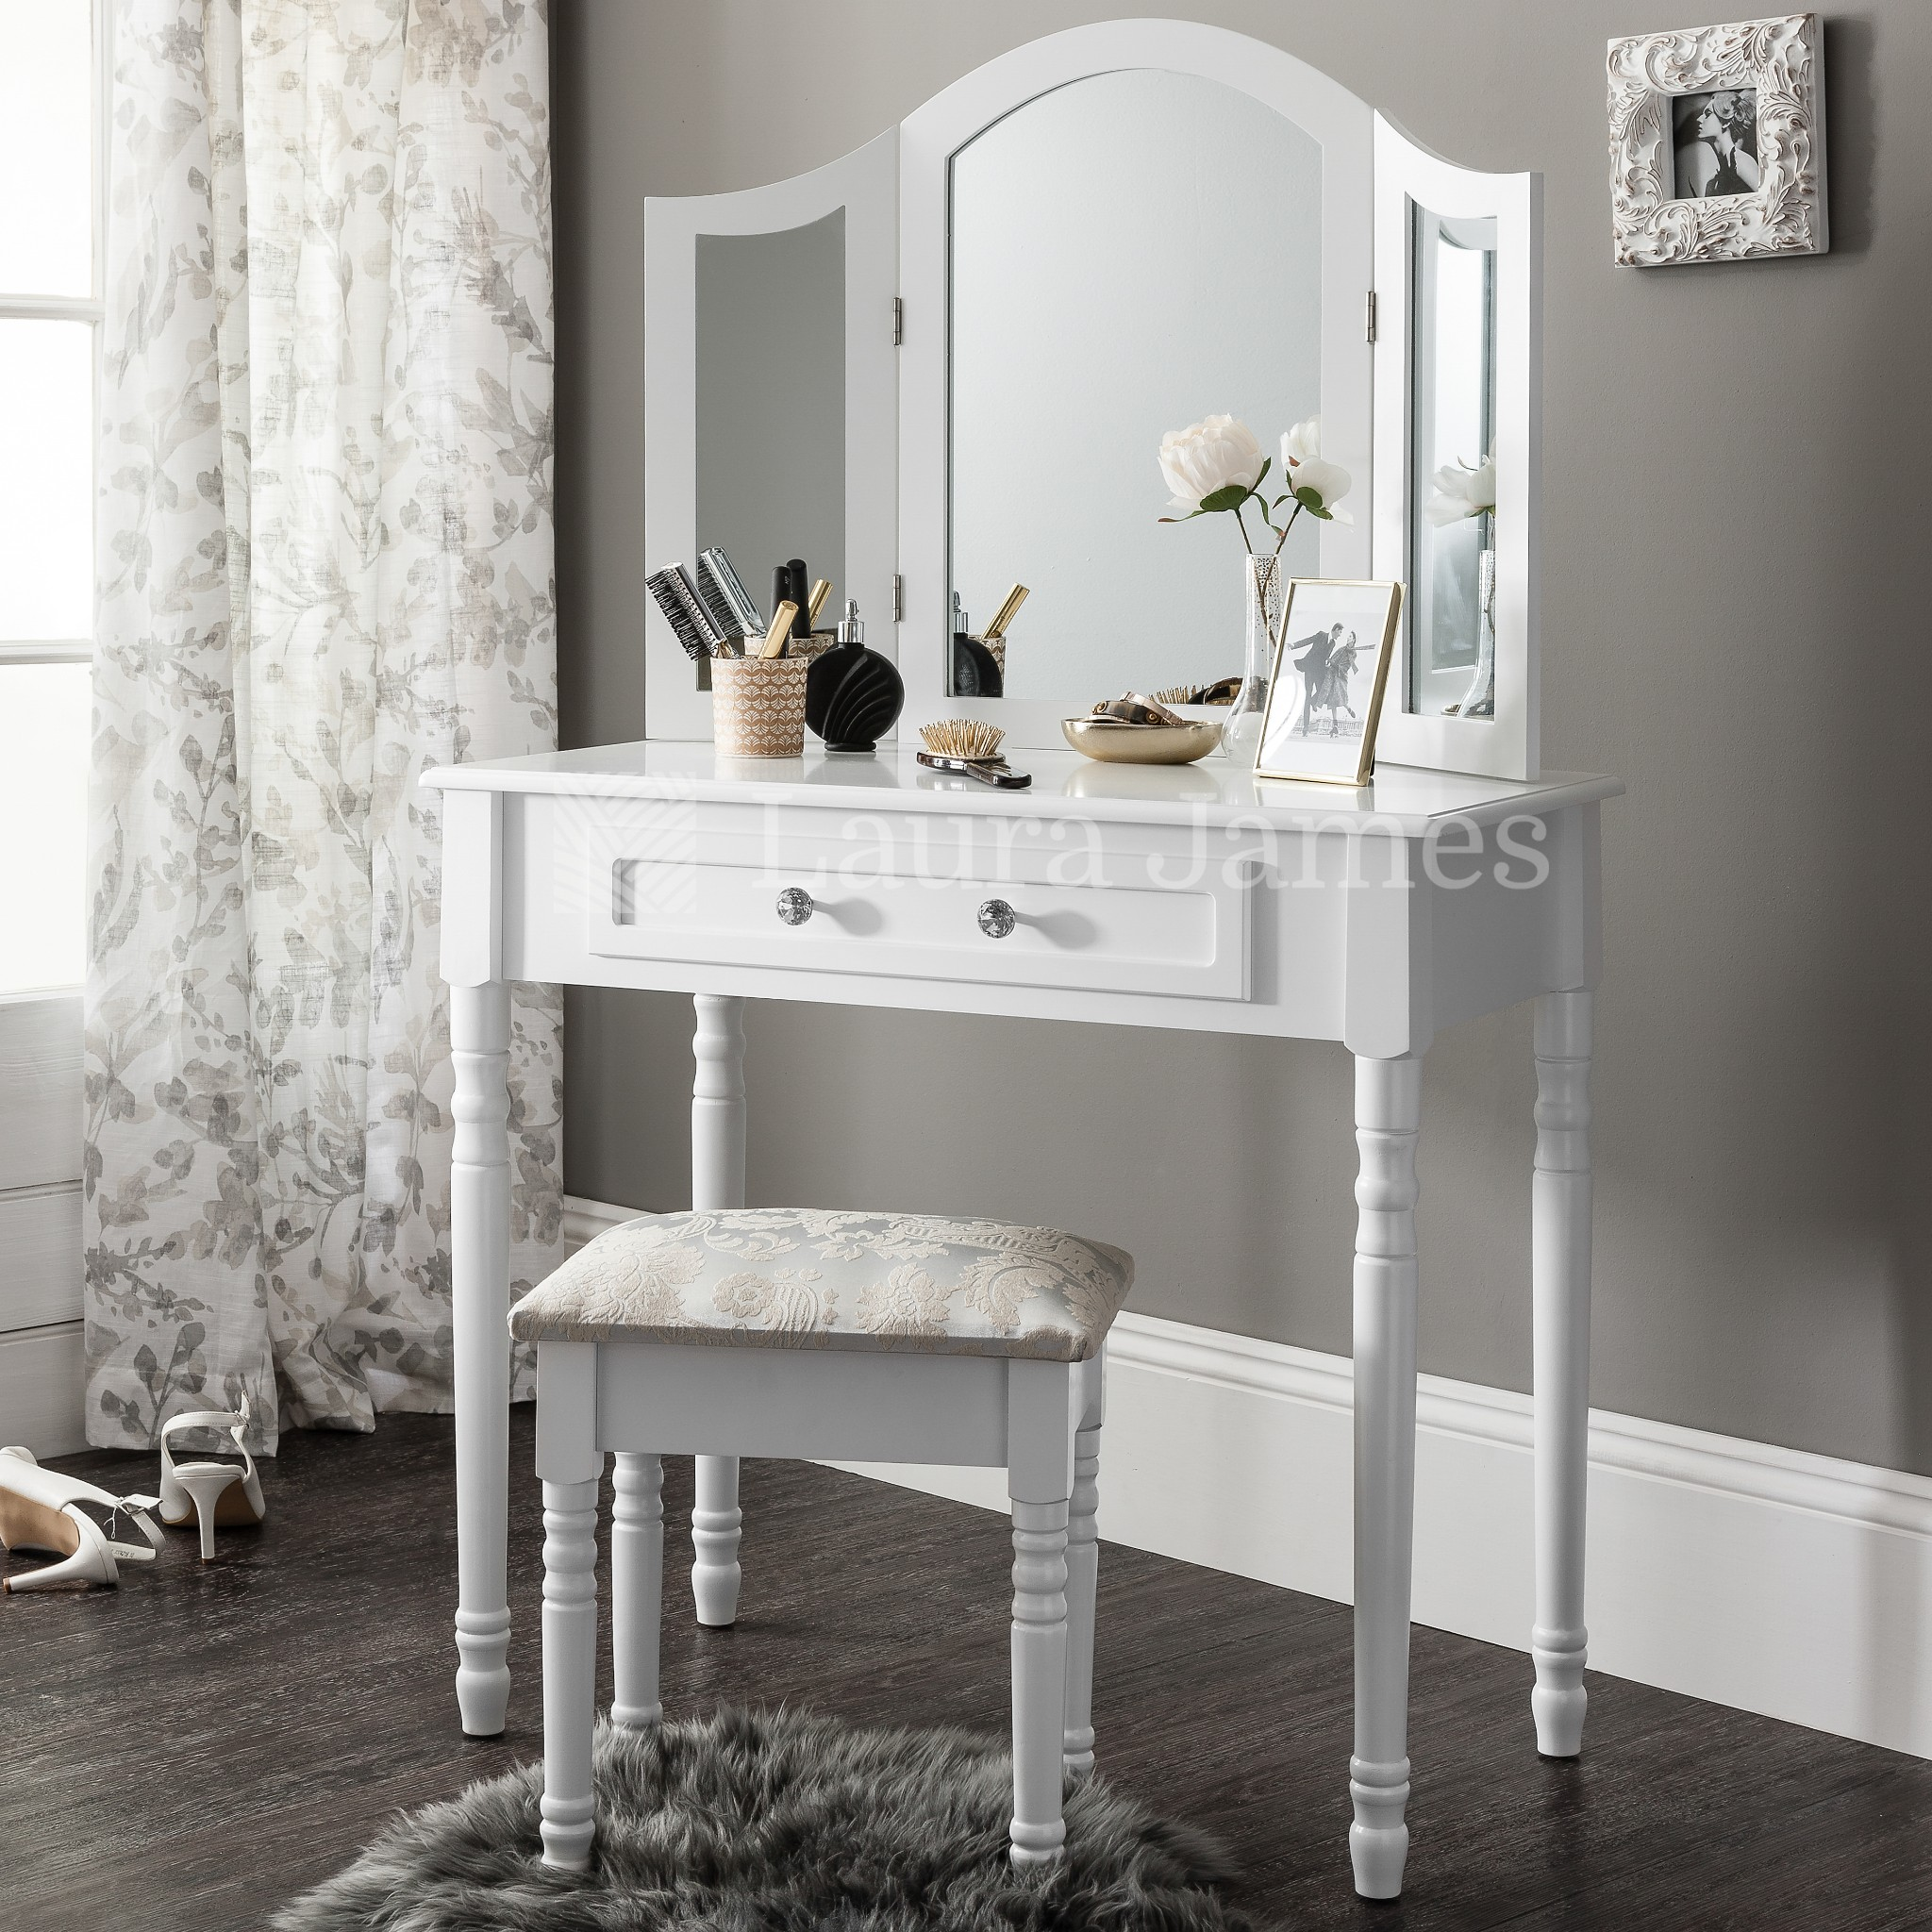 vanity and classic vanities makeup set also incredible ideas table bedroom small traditional t lighting overstock inspiring with bathroom